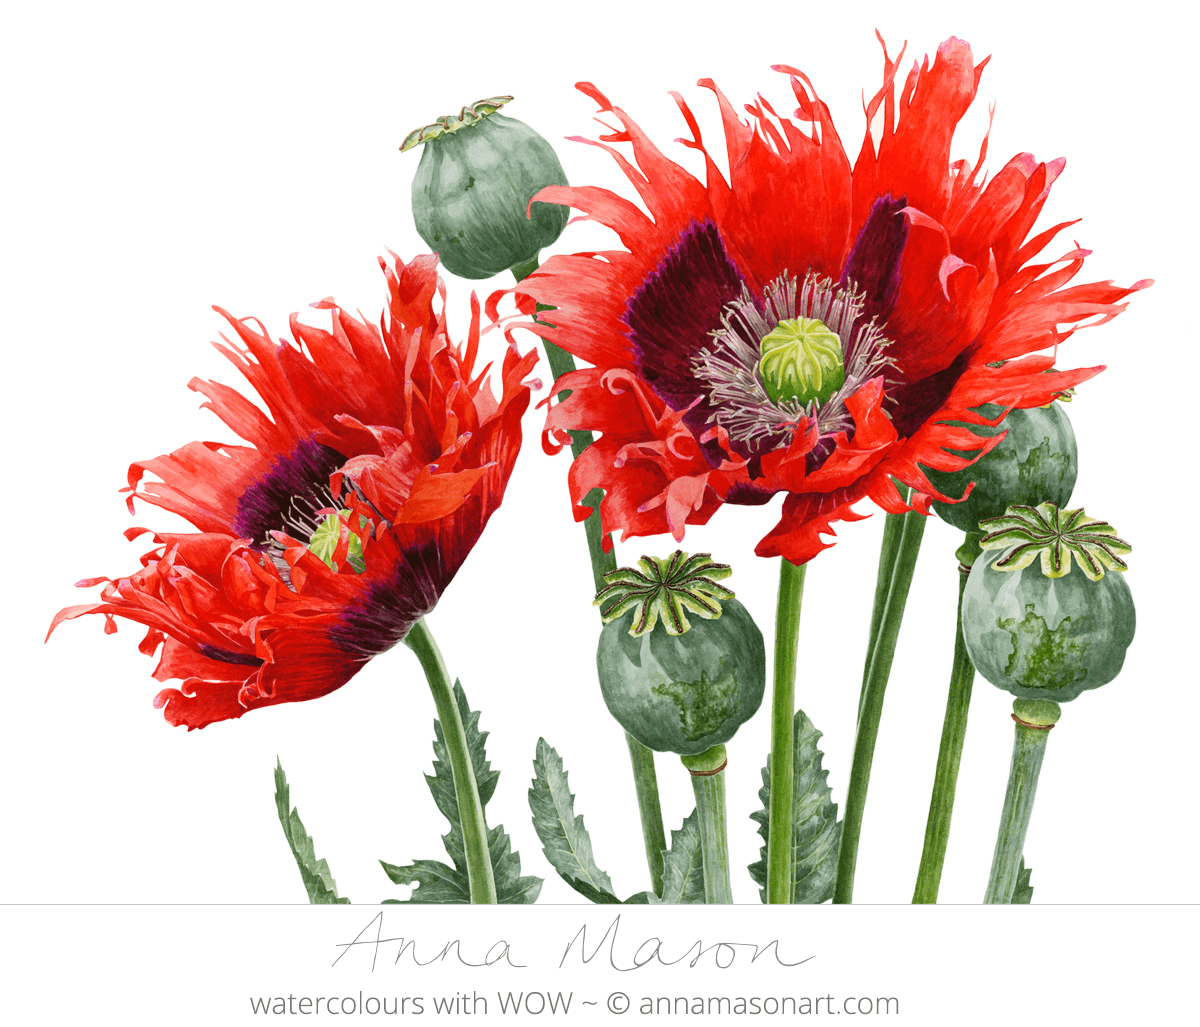 Doodlewash - Watercolor painting by Anna Mason of red flowers